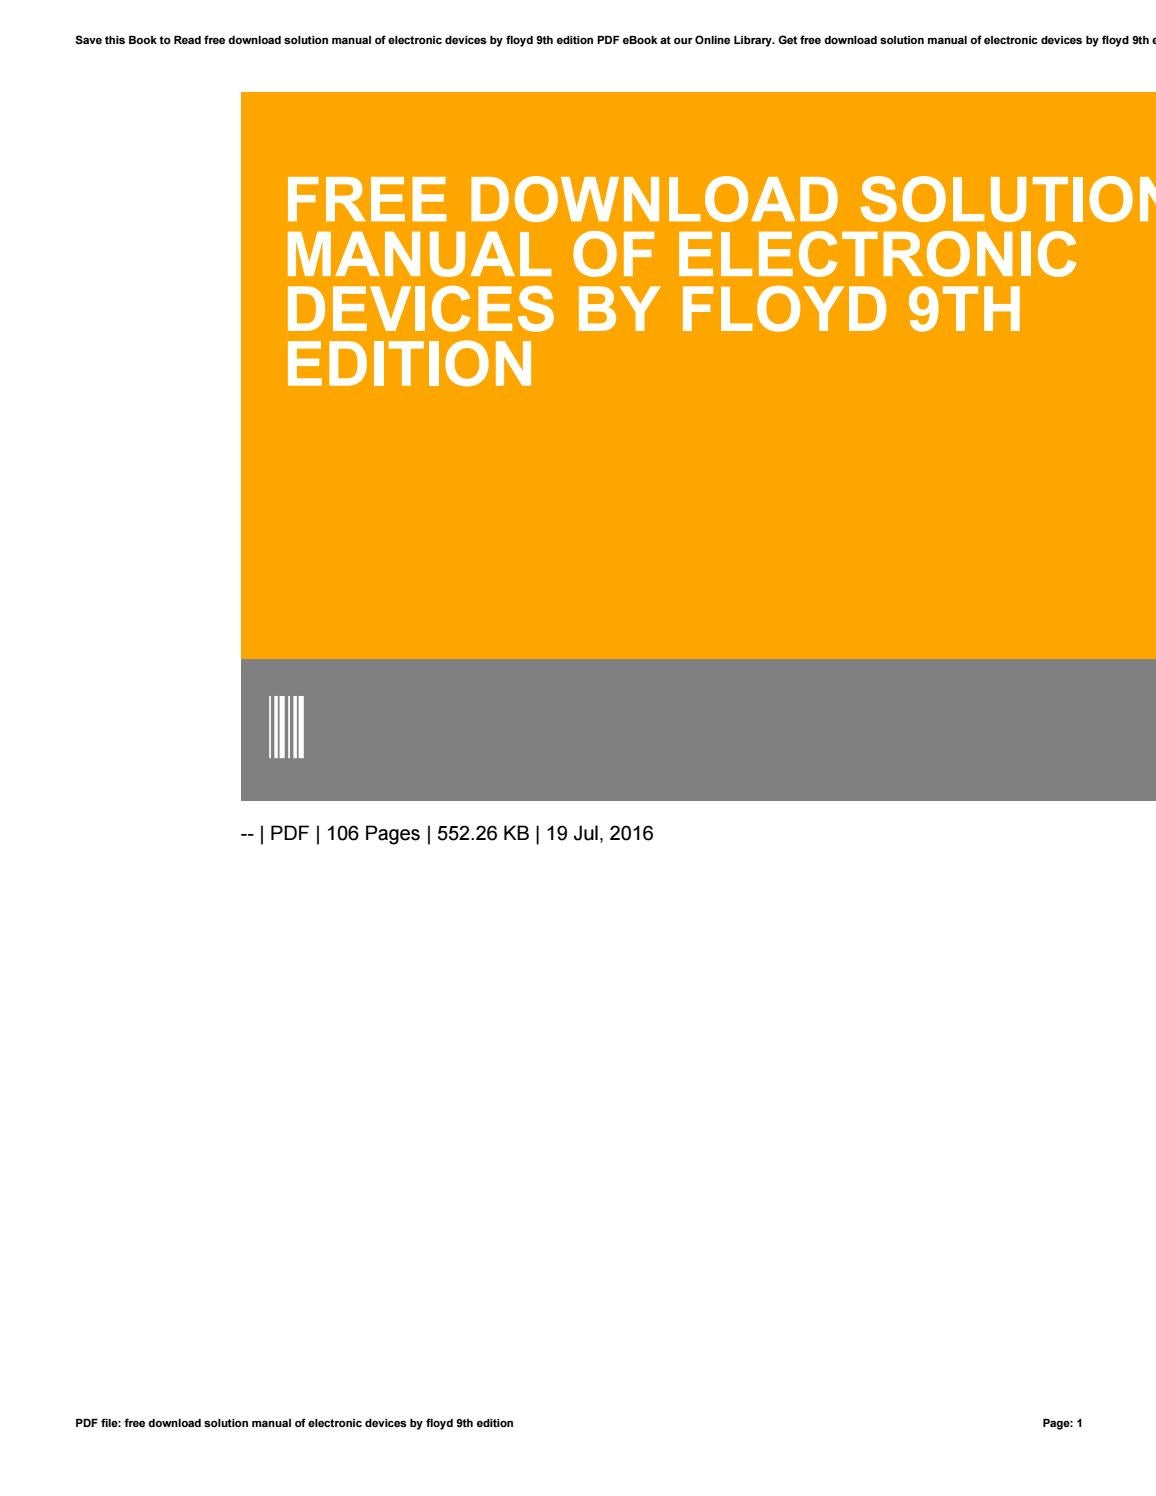 Business Essentials 9th Edition Download Wiring Library Touch Plate Diagram 6 Pl Free Solution Manual Of Electronic Devices By Floyd 4tb89 Issuu